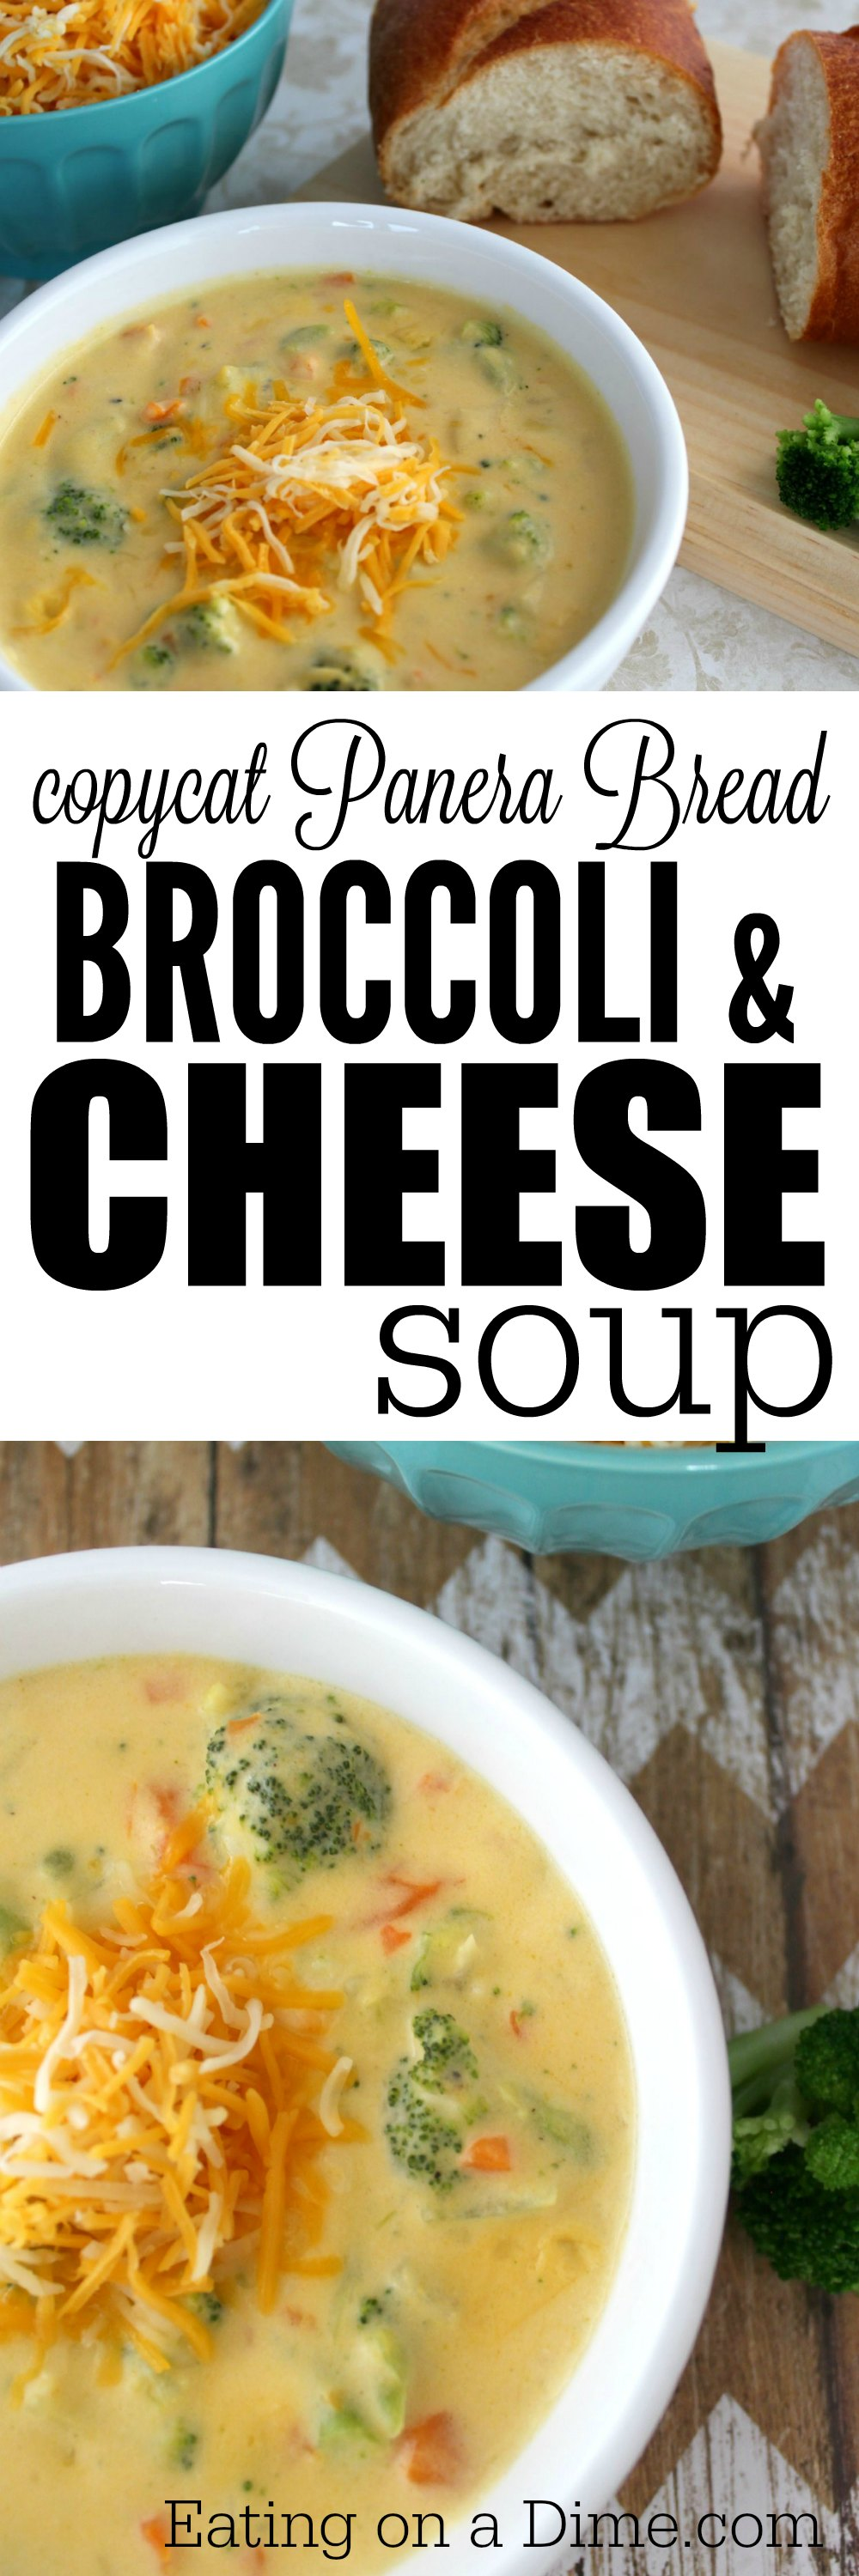 Here is an easy copycat panera broccoli cheese soup recipe. Panera broccoli cheese soup recipe is easy to make and will save you money.